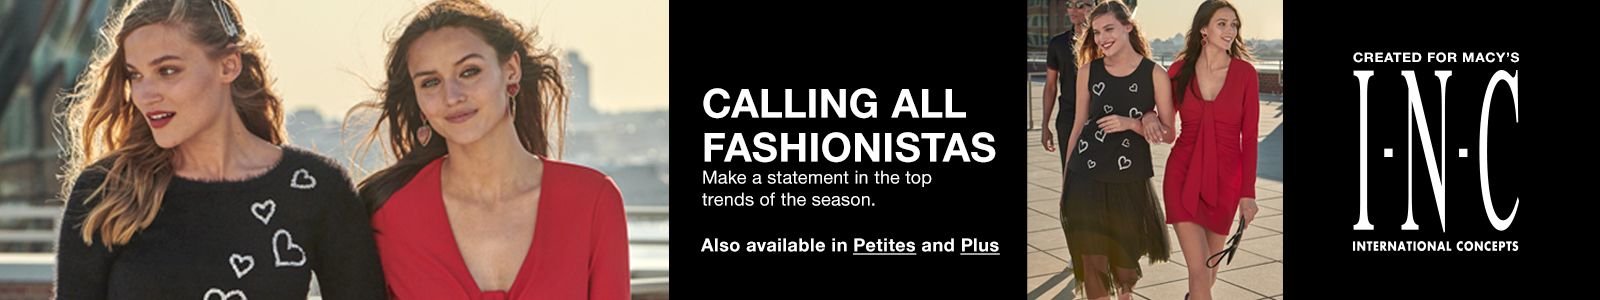 Calling All Fashionistas, Also available in Petites and Plus, Created For Macy's, I.N.C International Concepts